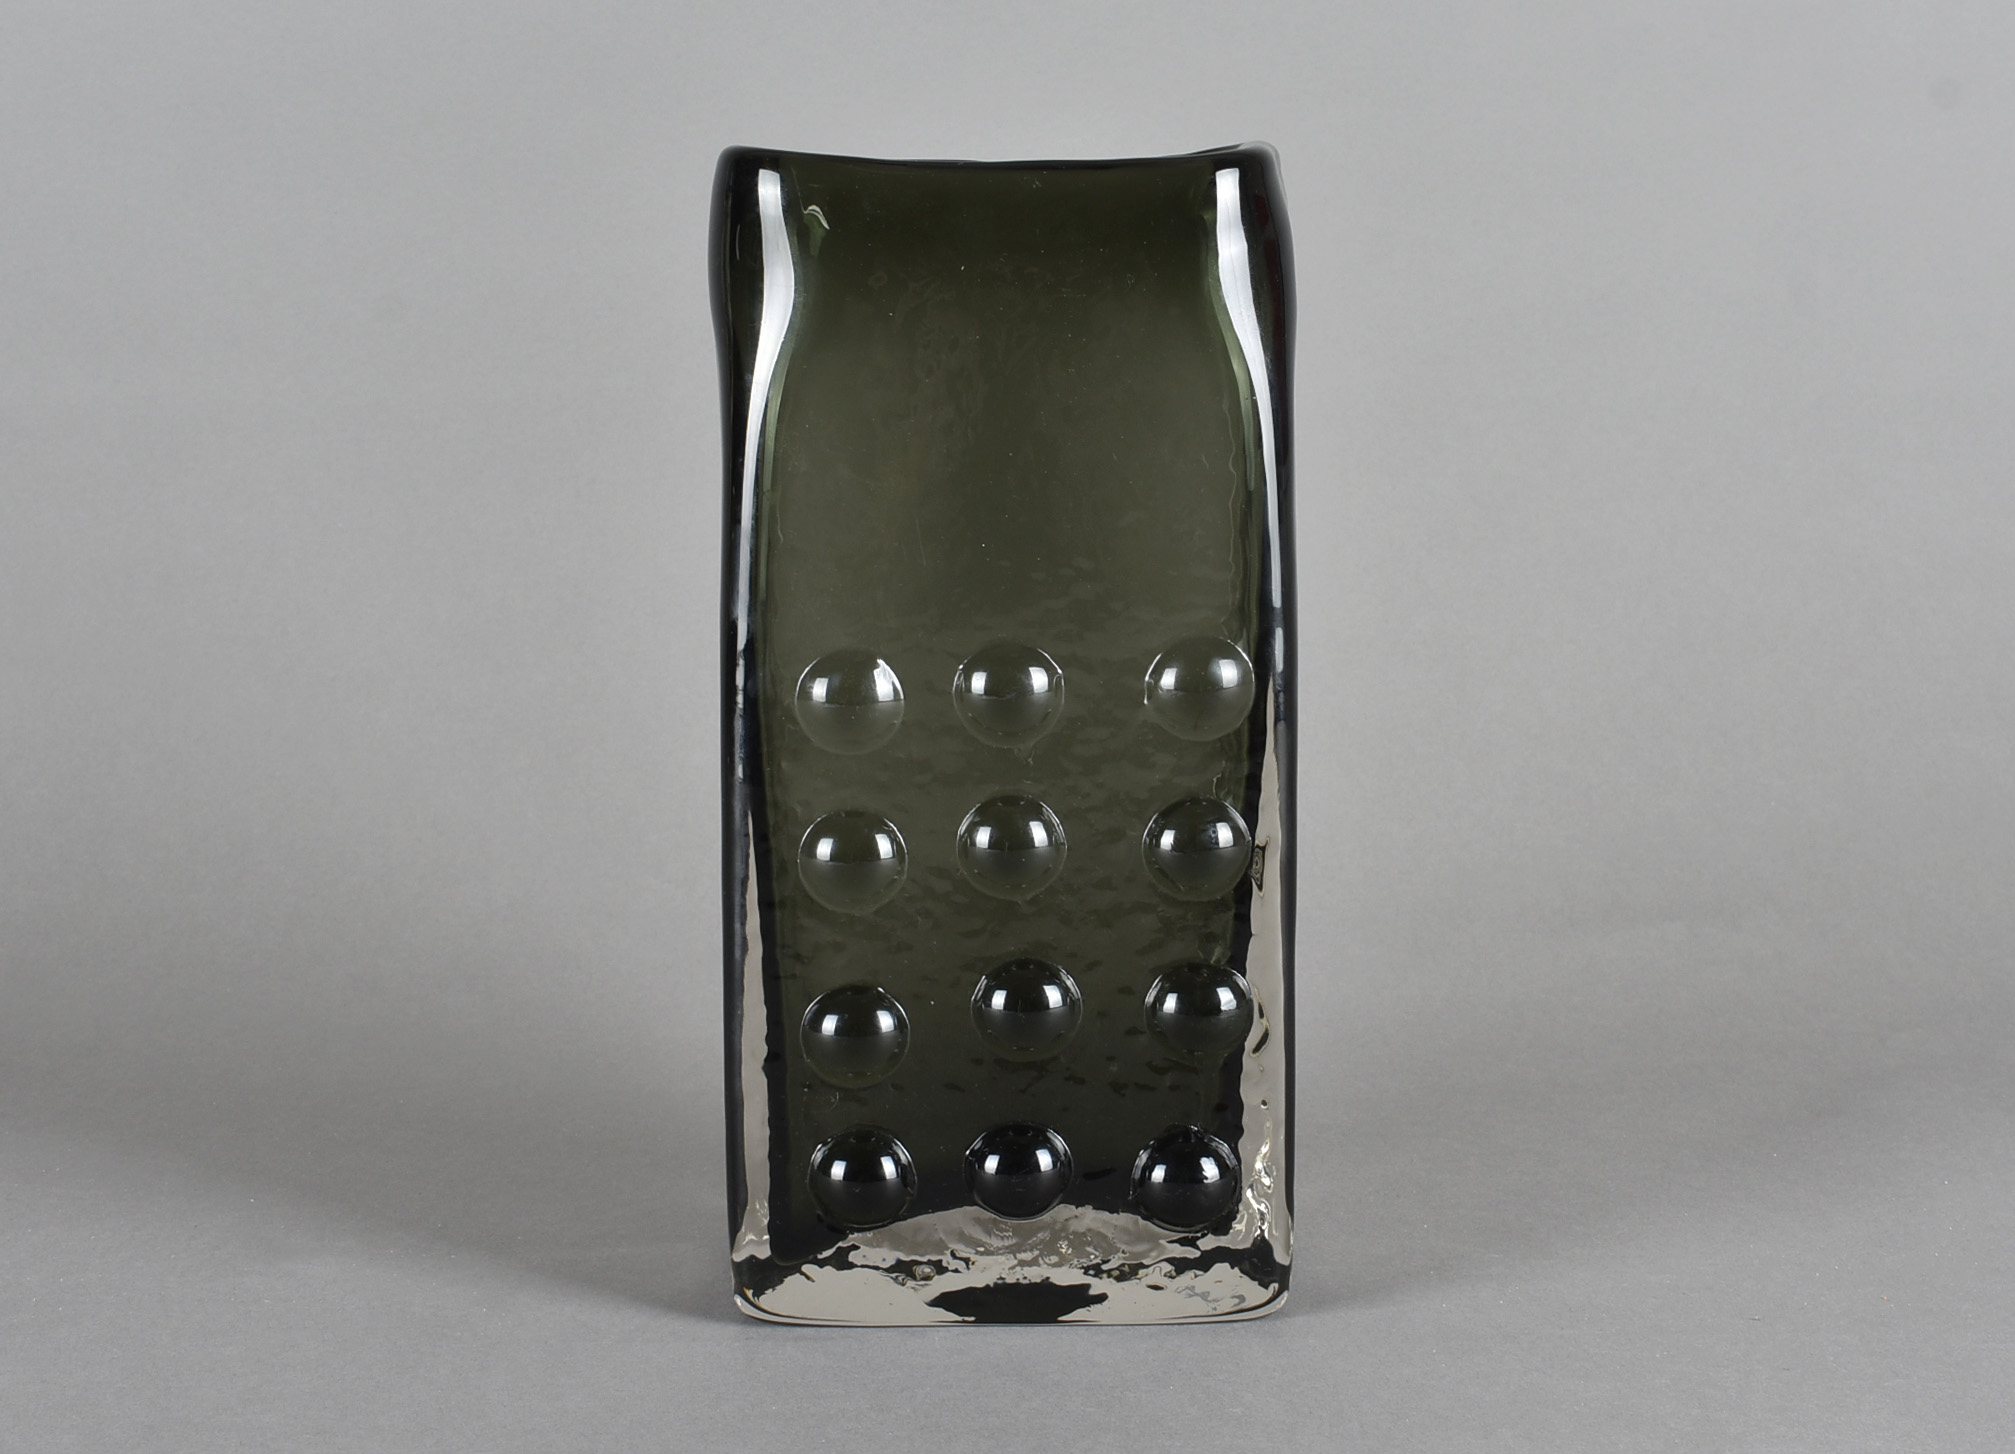 Geoffrey Baxter for Whitefriars, a Textured glass range 'Mobile Phone' slab vase in Willow 27cm. N.